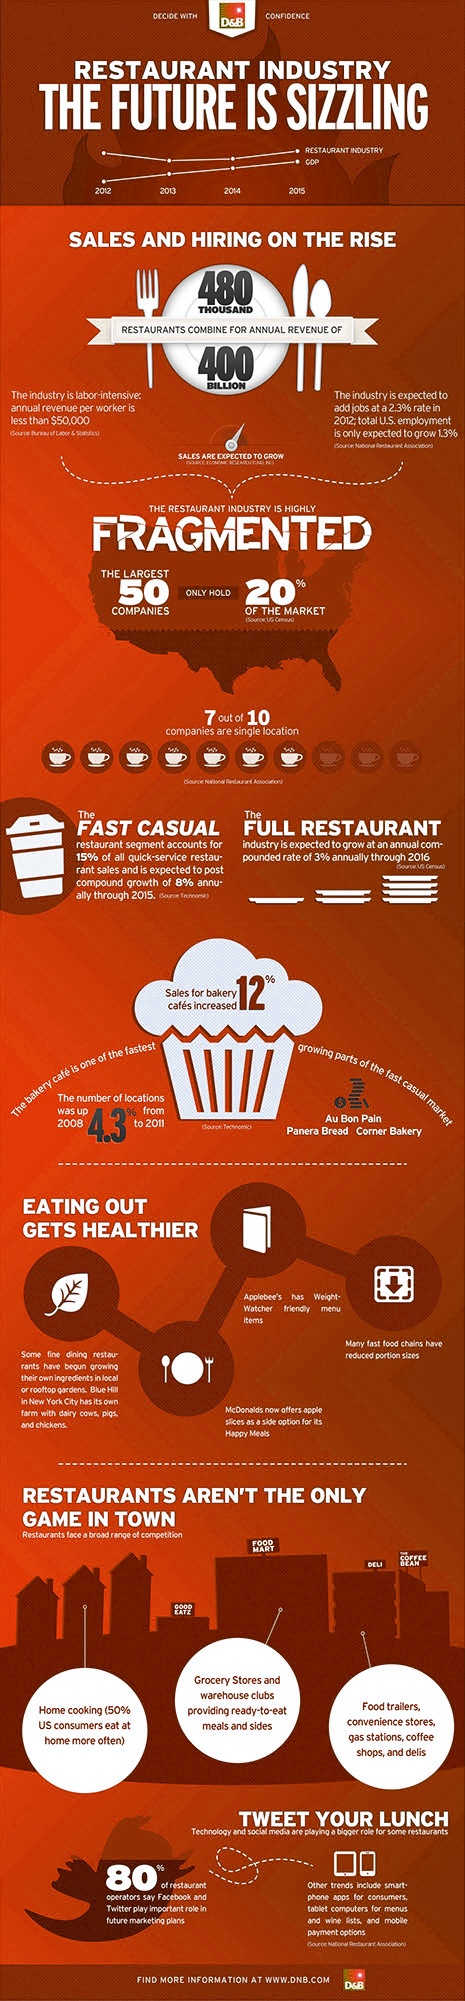 Brands leading restaurant segment in design innovation fast casual - Restaurant Industry The Future Is Sizzling Infographic